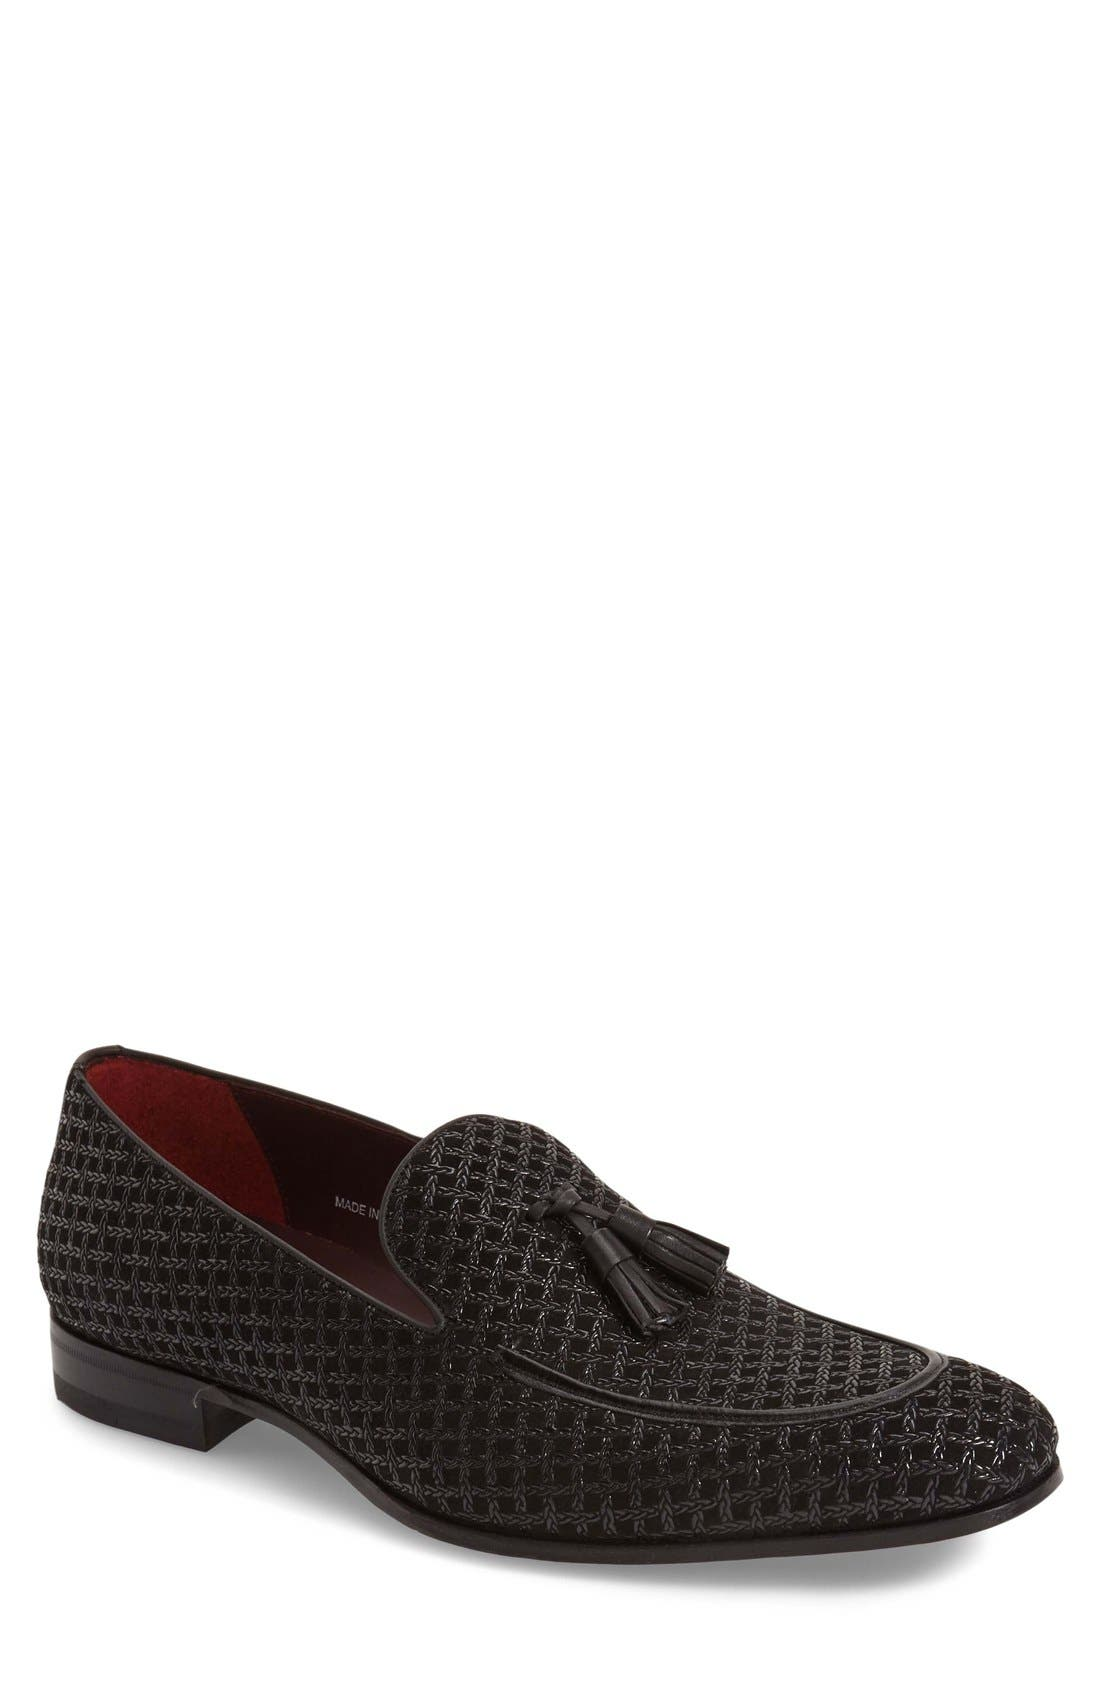 'Carol' Tassel Loafer,                             Main thumbnail 1, color,                             Black Patterned Fabric